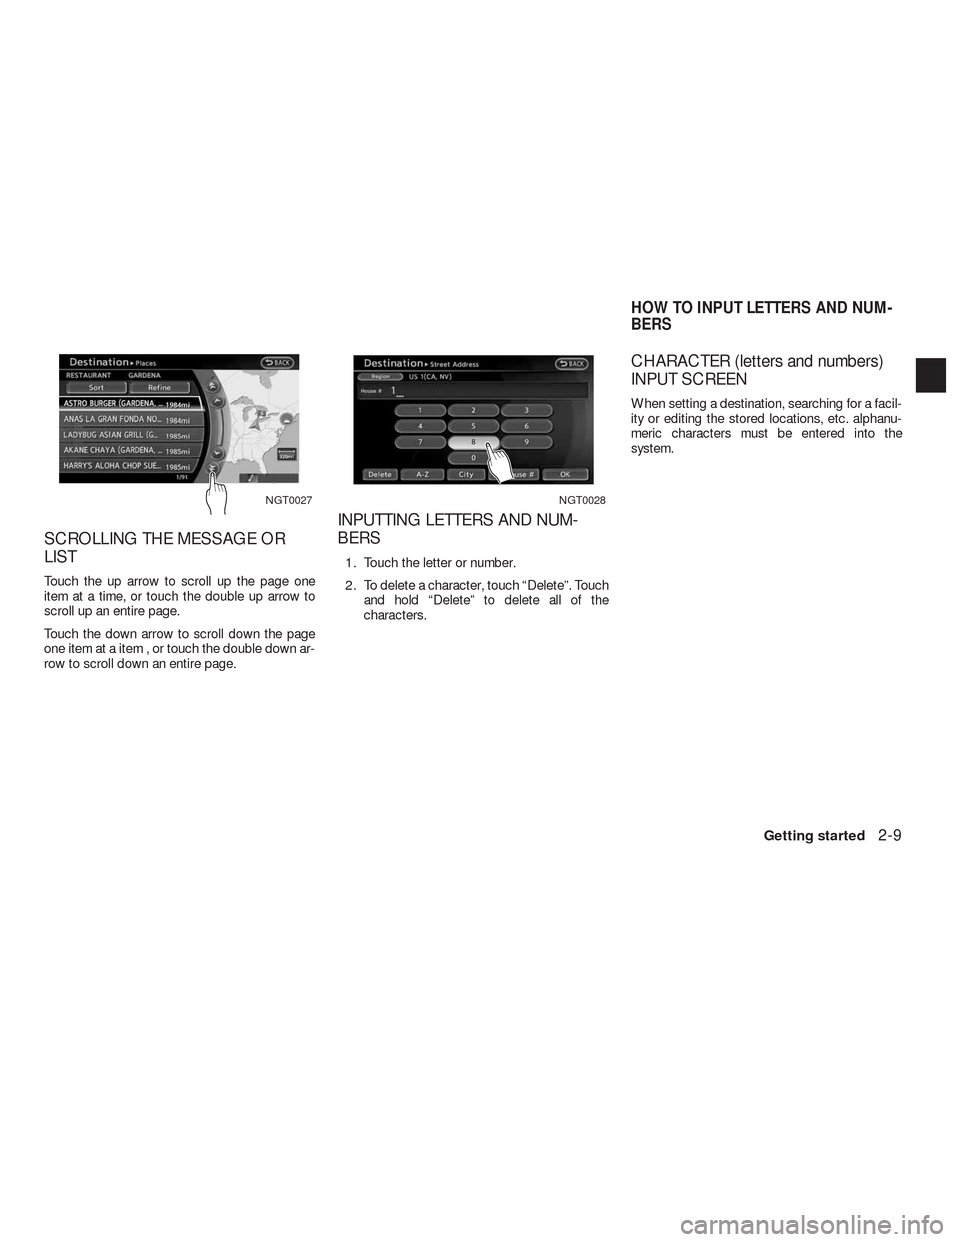 NISSAN ALTIMA COUPE 2010 D32 / 4.G Navigation Manual, Page 16